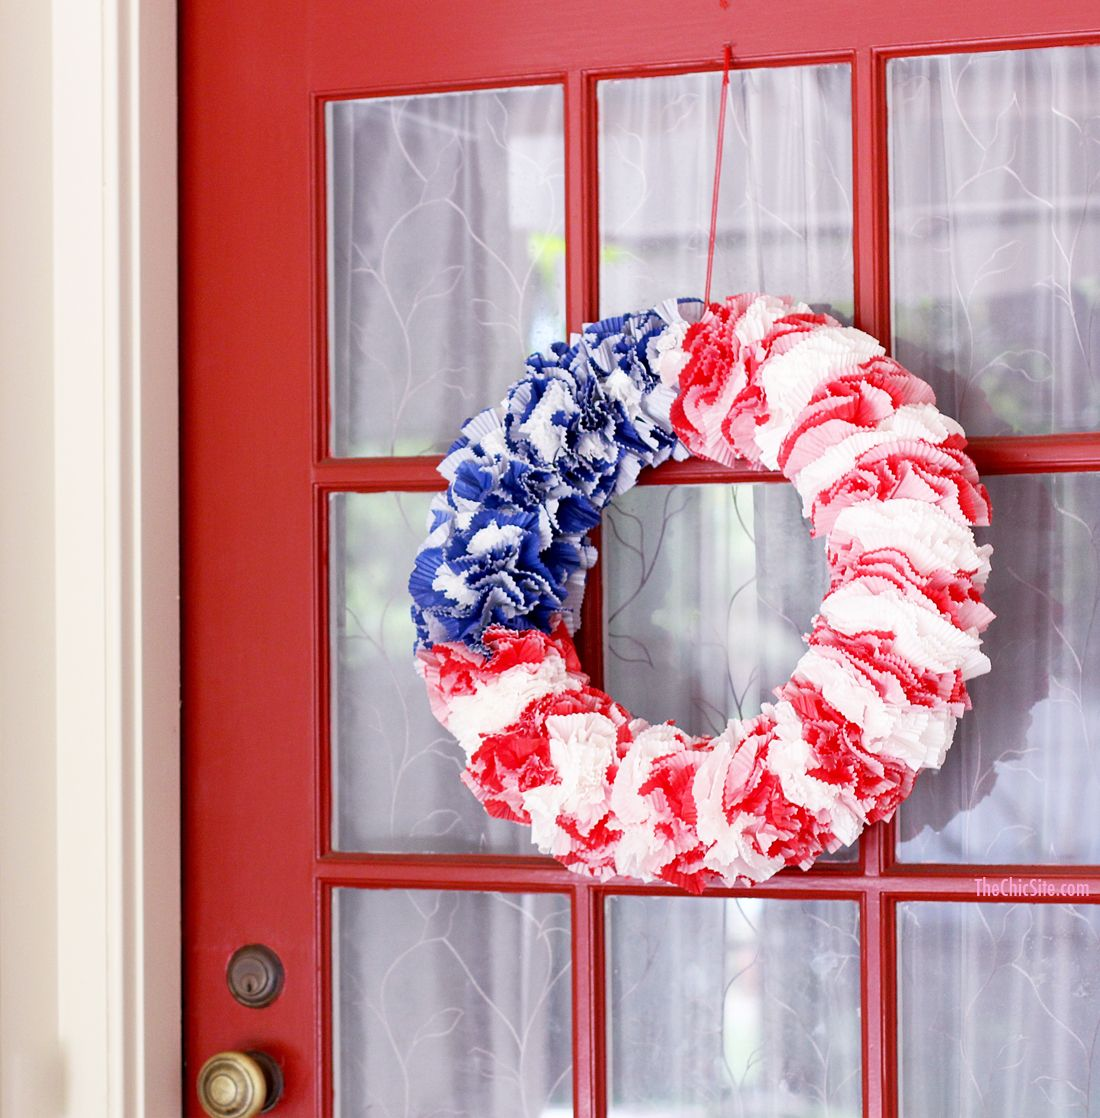 Red, White and Blue Wreath Rachel Hollis The chic site